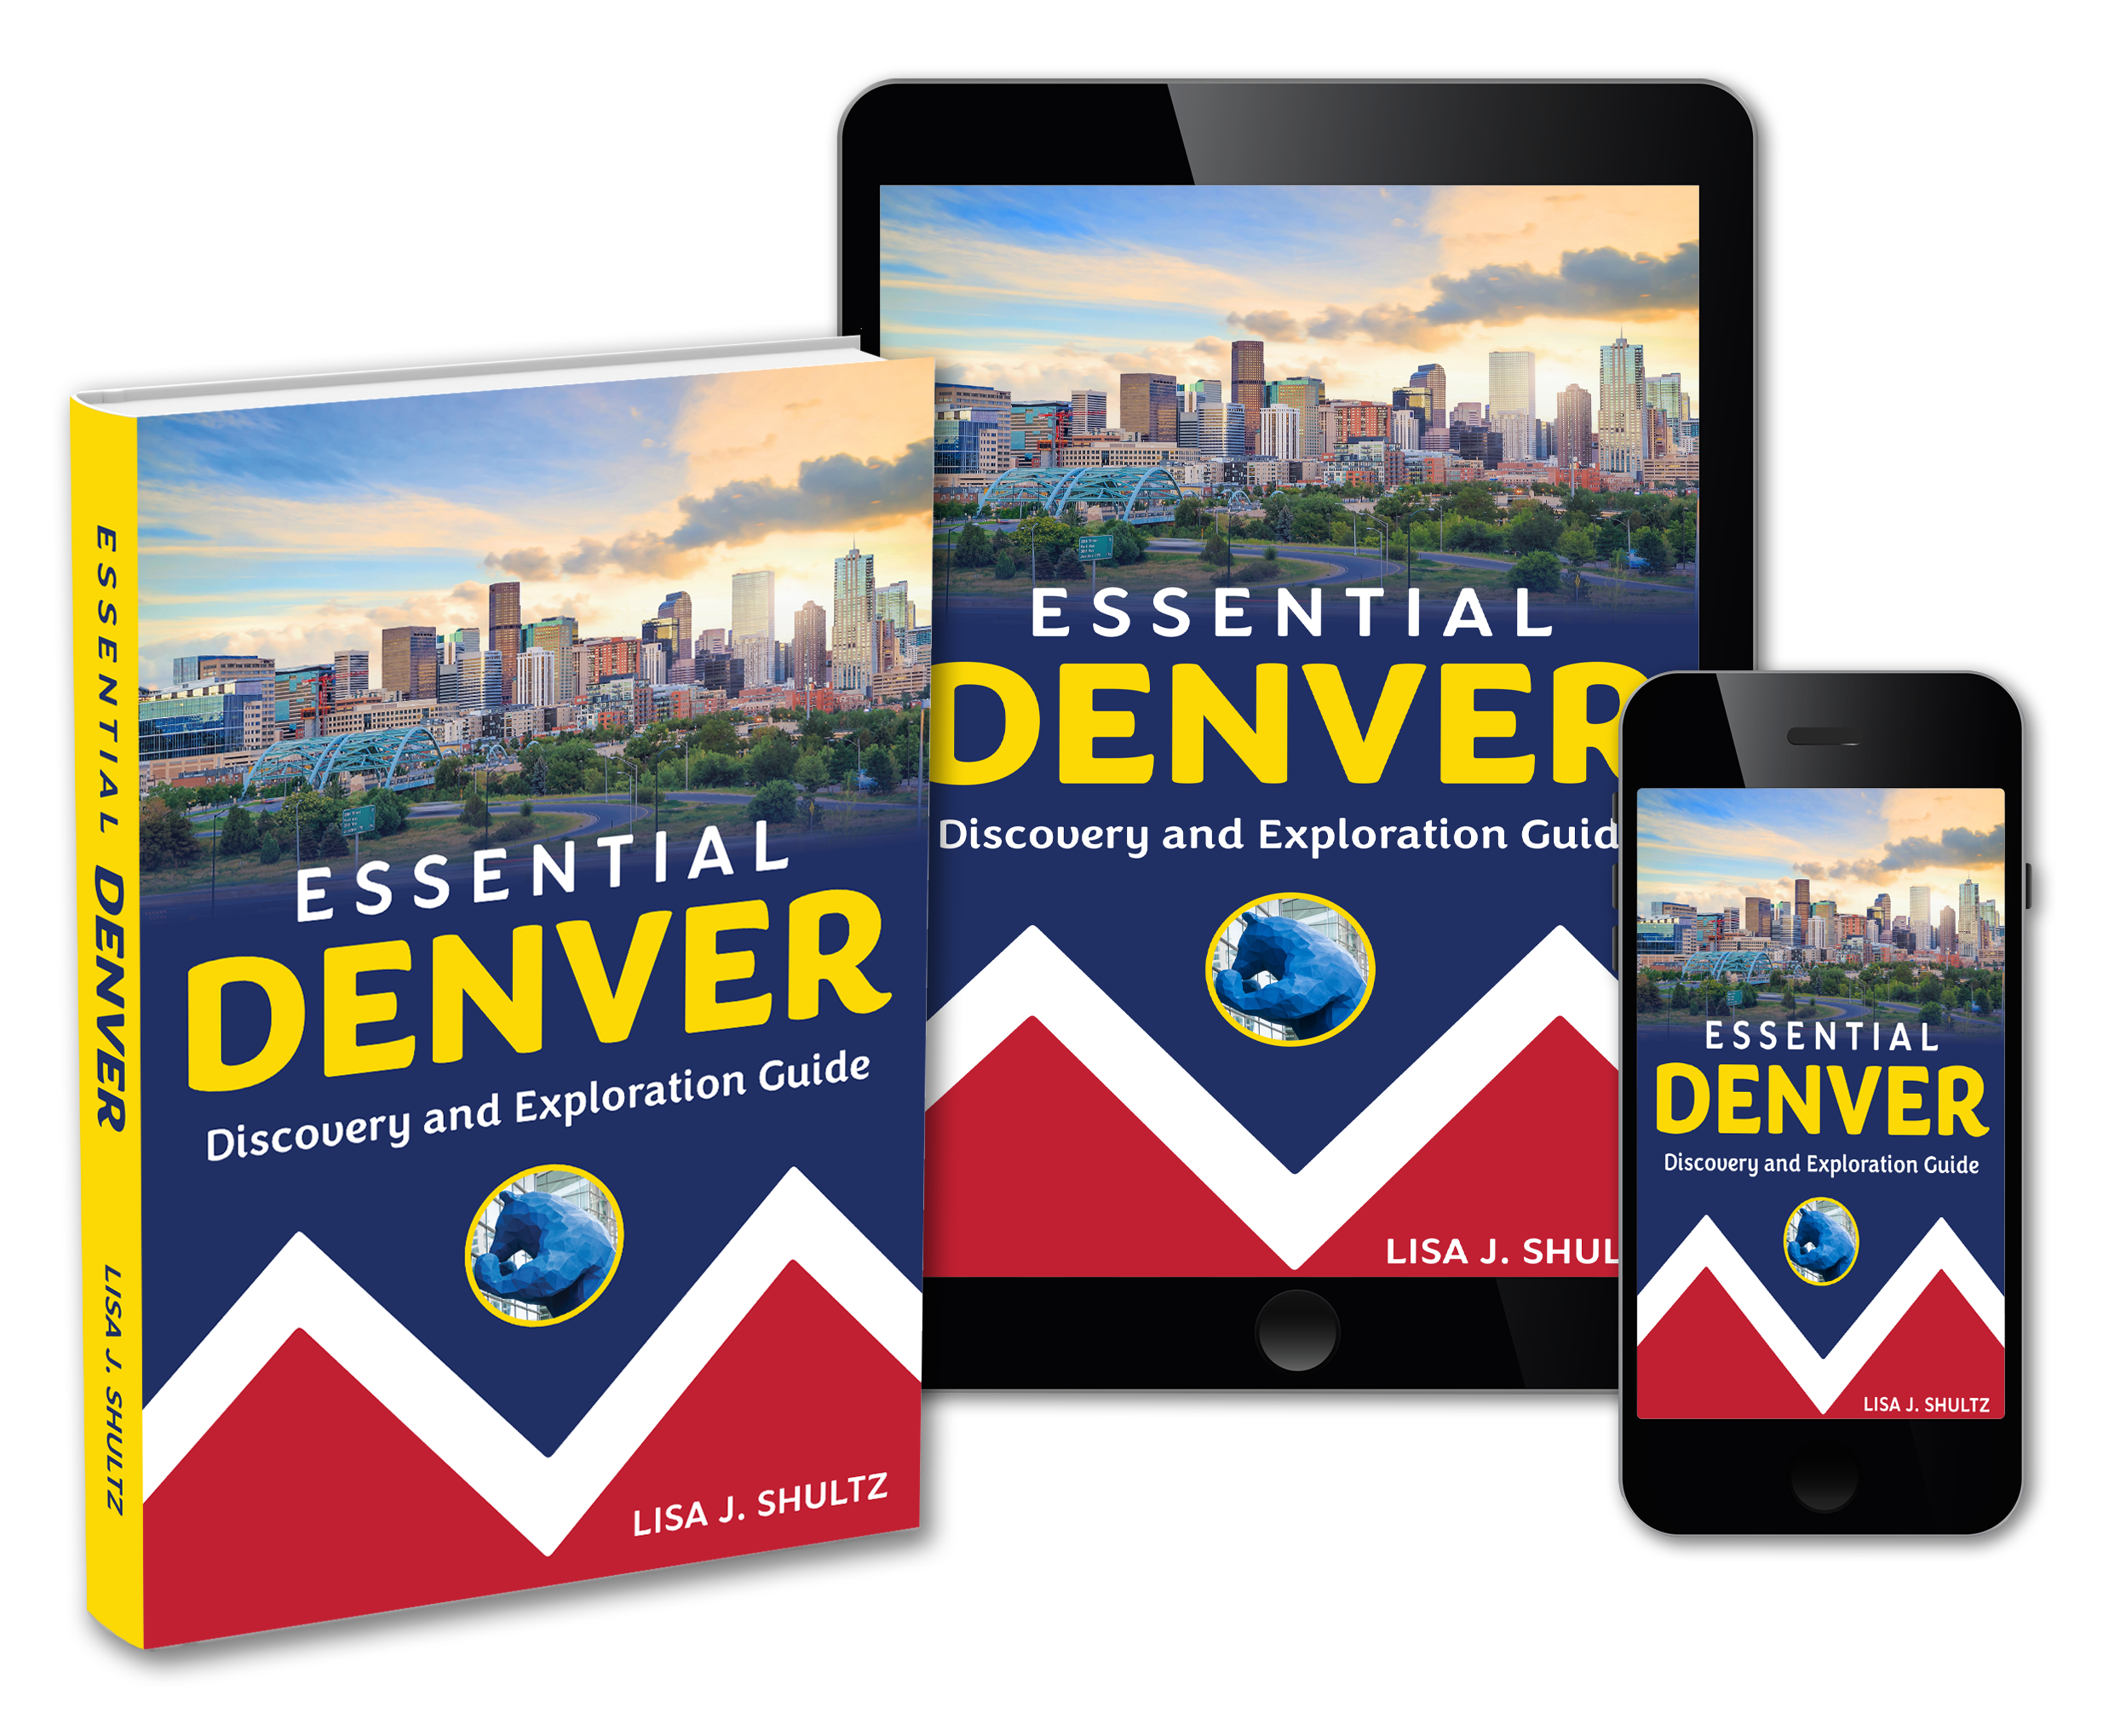 Essential Denver: Discovery and Exploration Guide